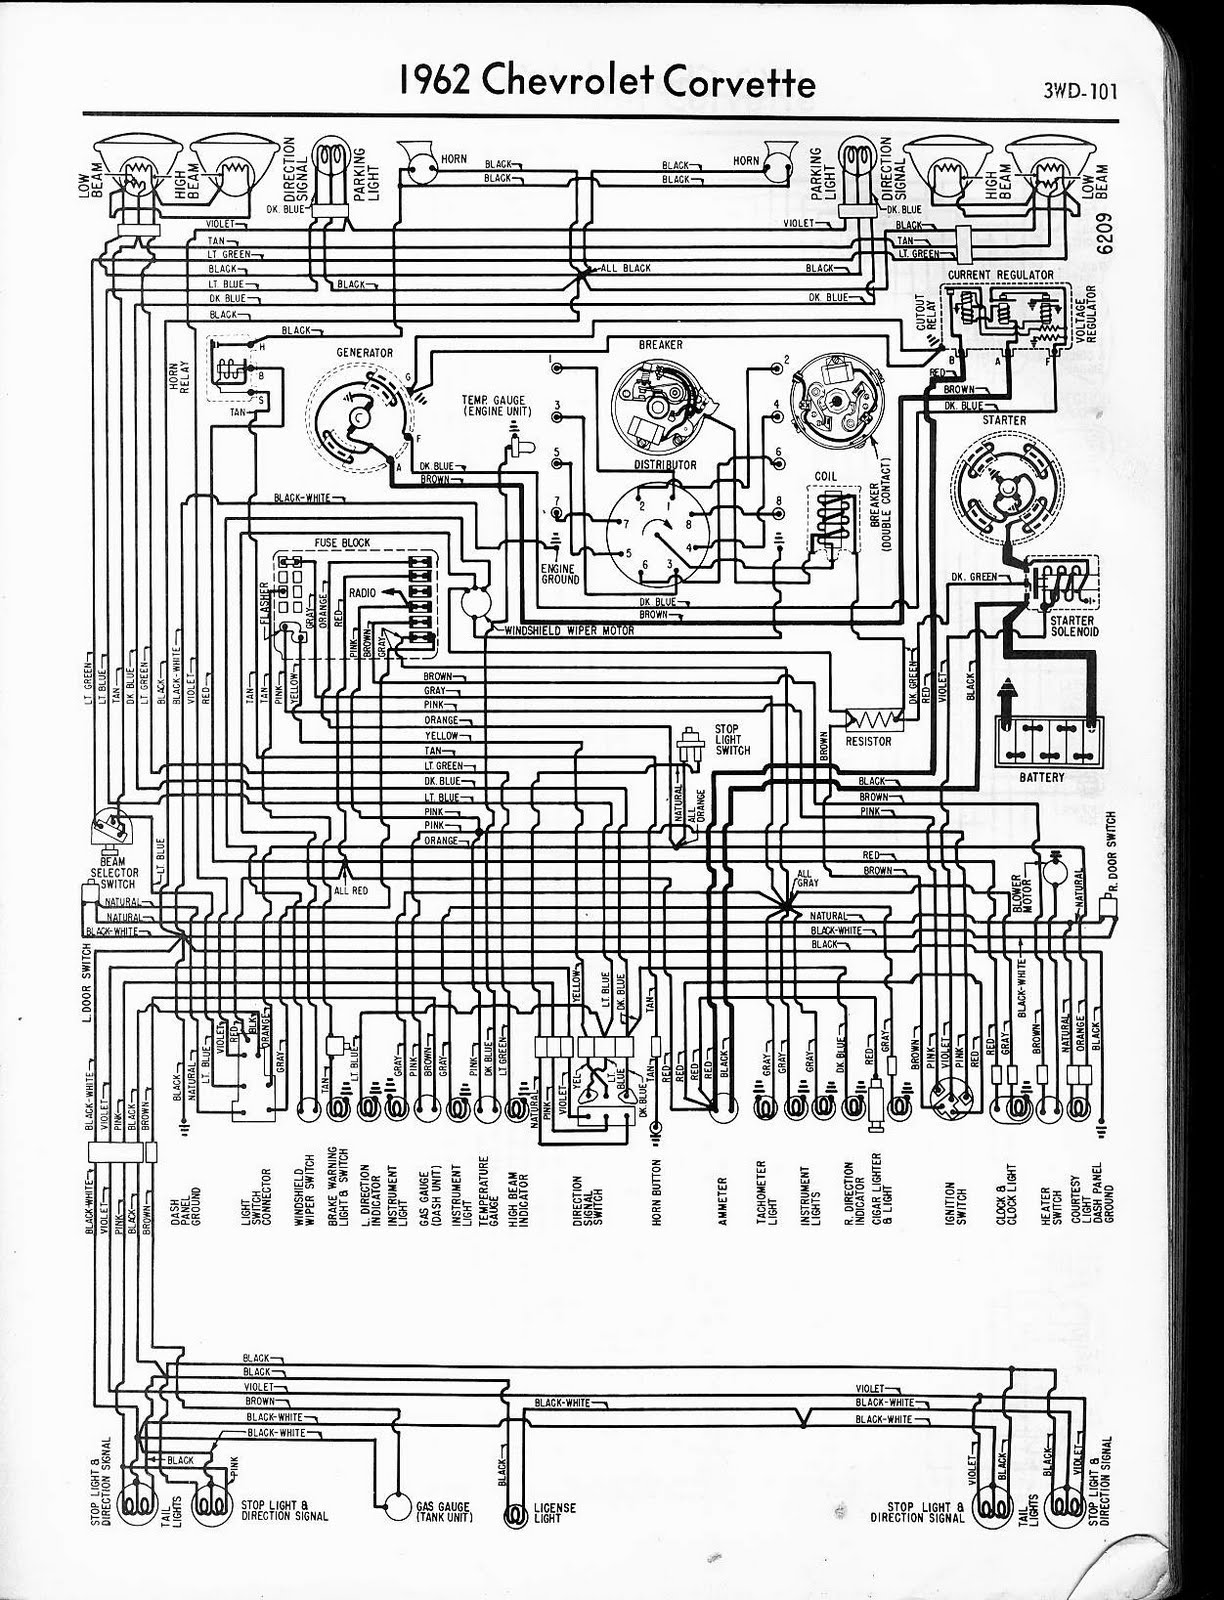 impala heater wiring diagram auto electrical wiring diagram bmw 545i wiring diagram bmw z4 wiring diagrams [ 1224 x 1600 Pixel ]